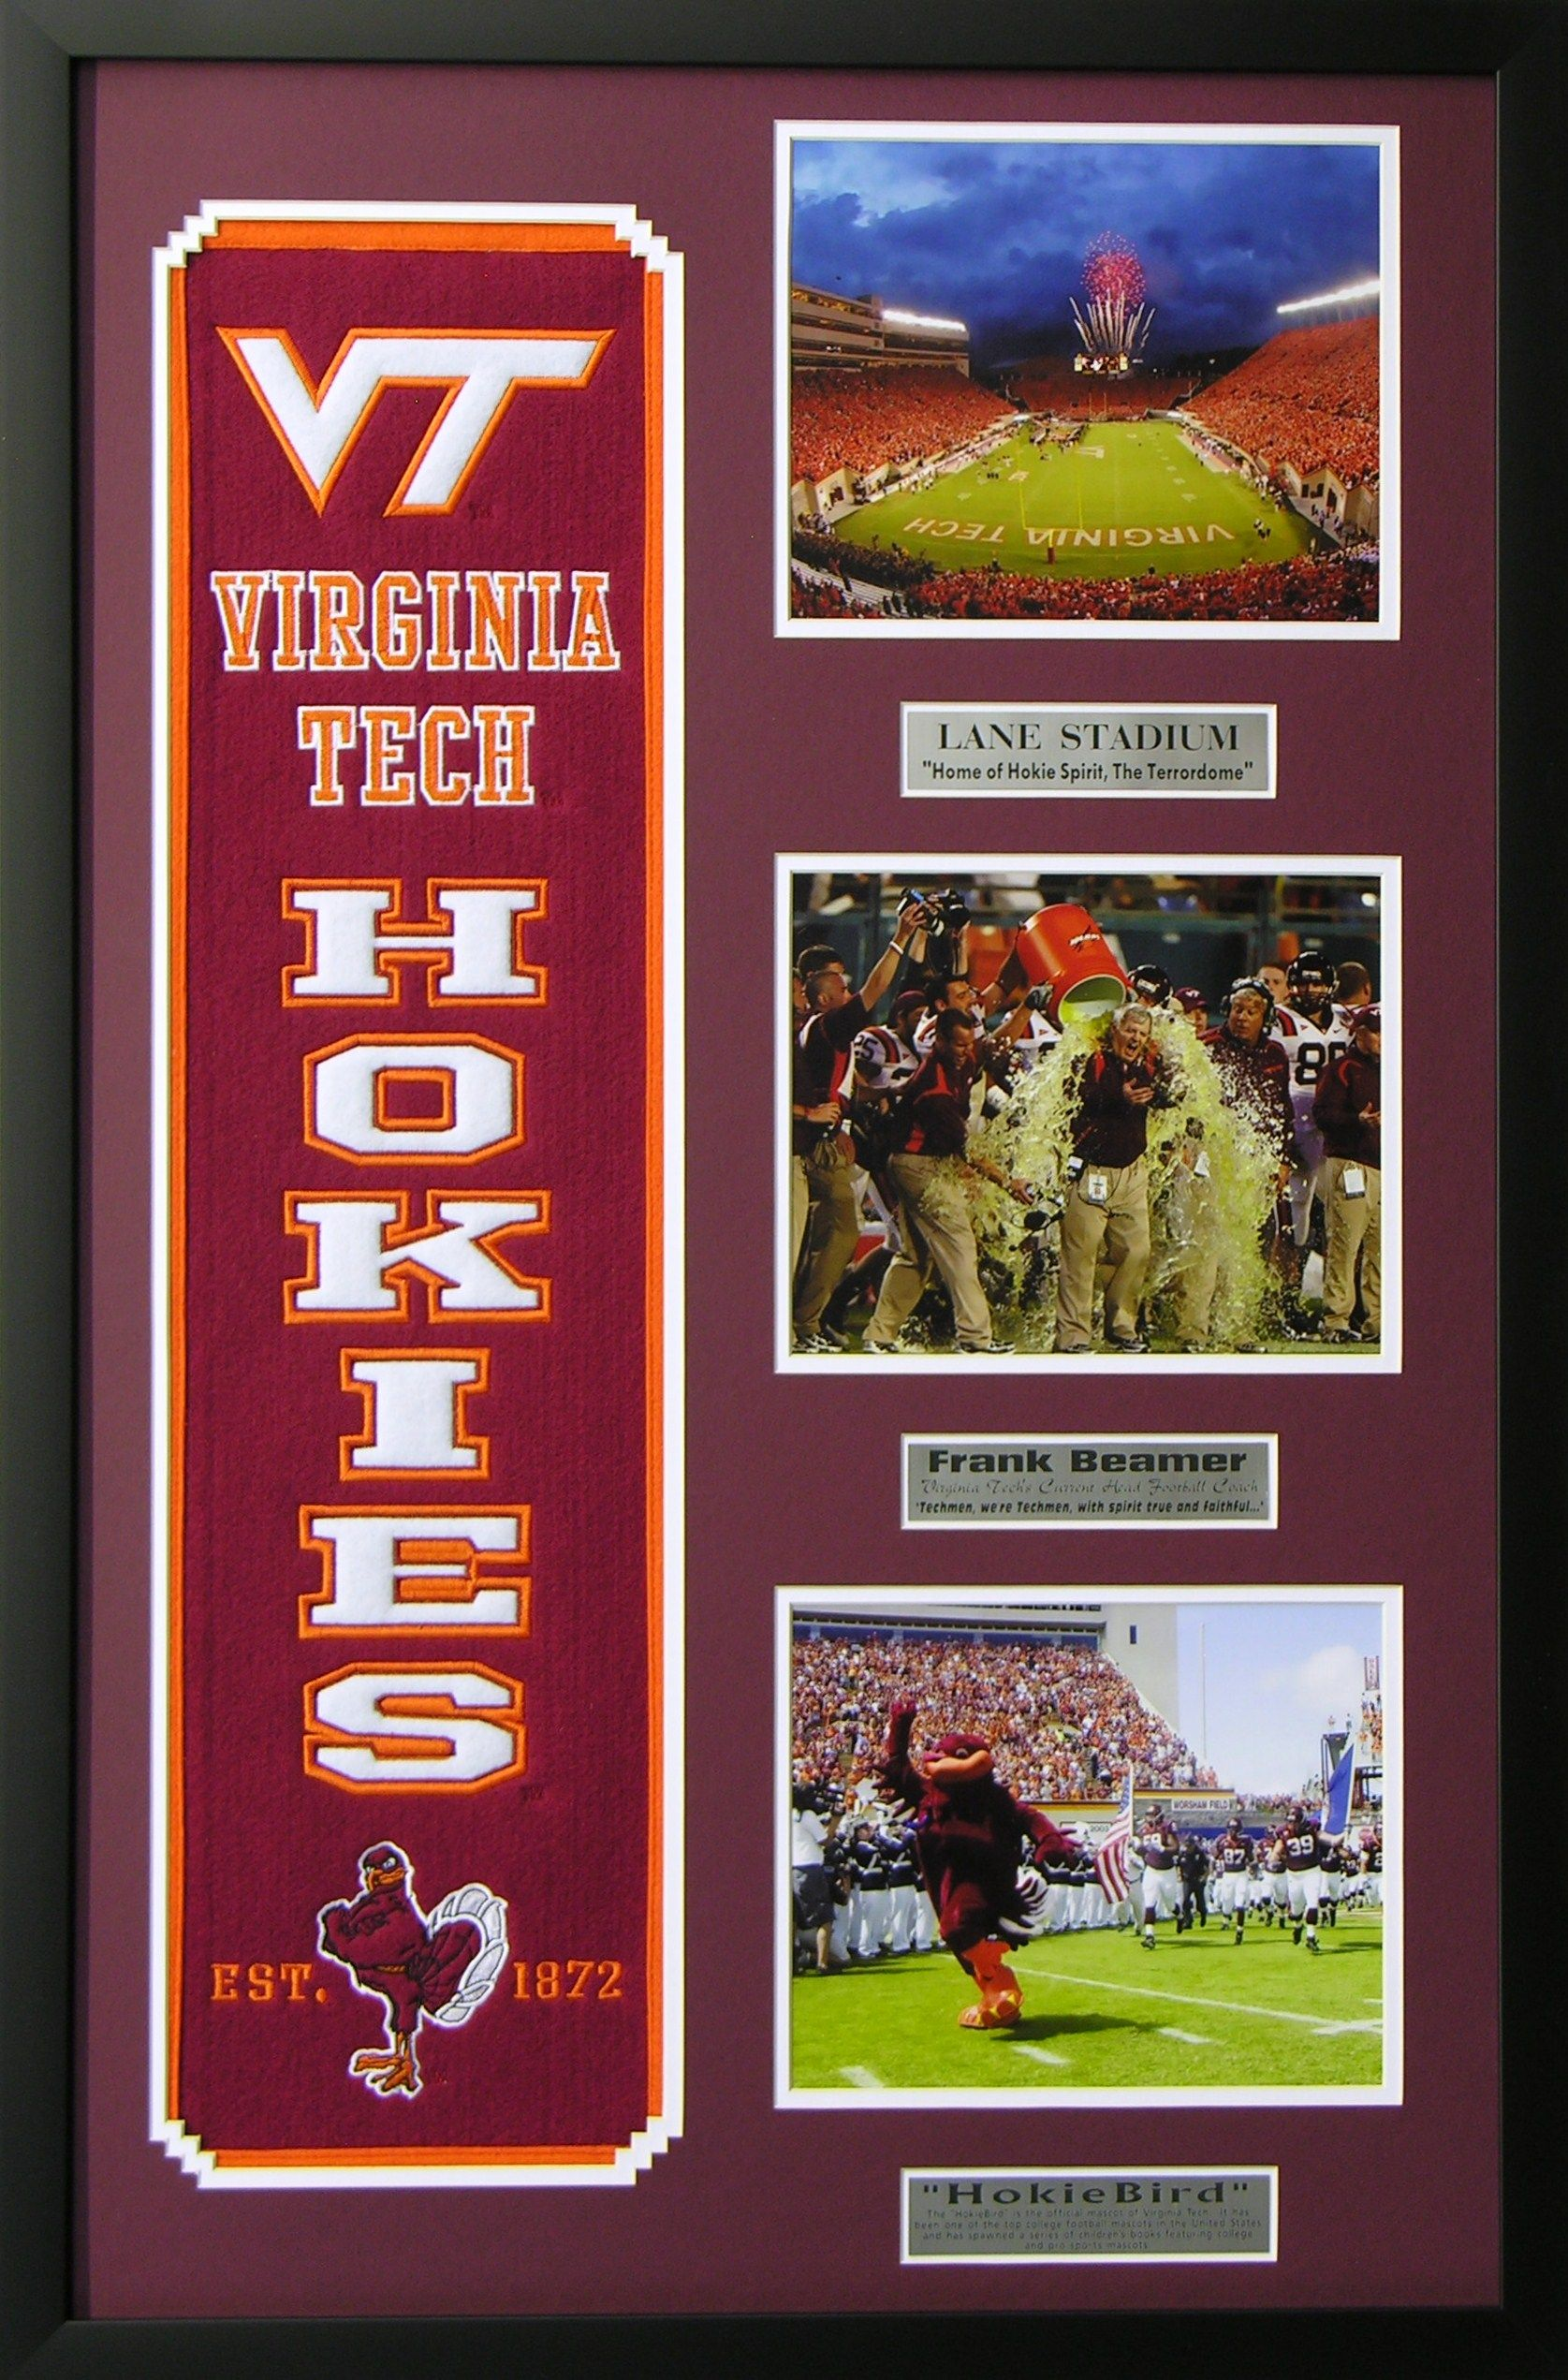 virginia tech ncaa heritage wall art perfect decor for a man cave basement or